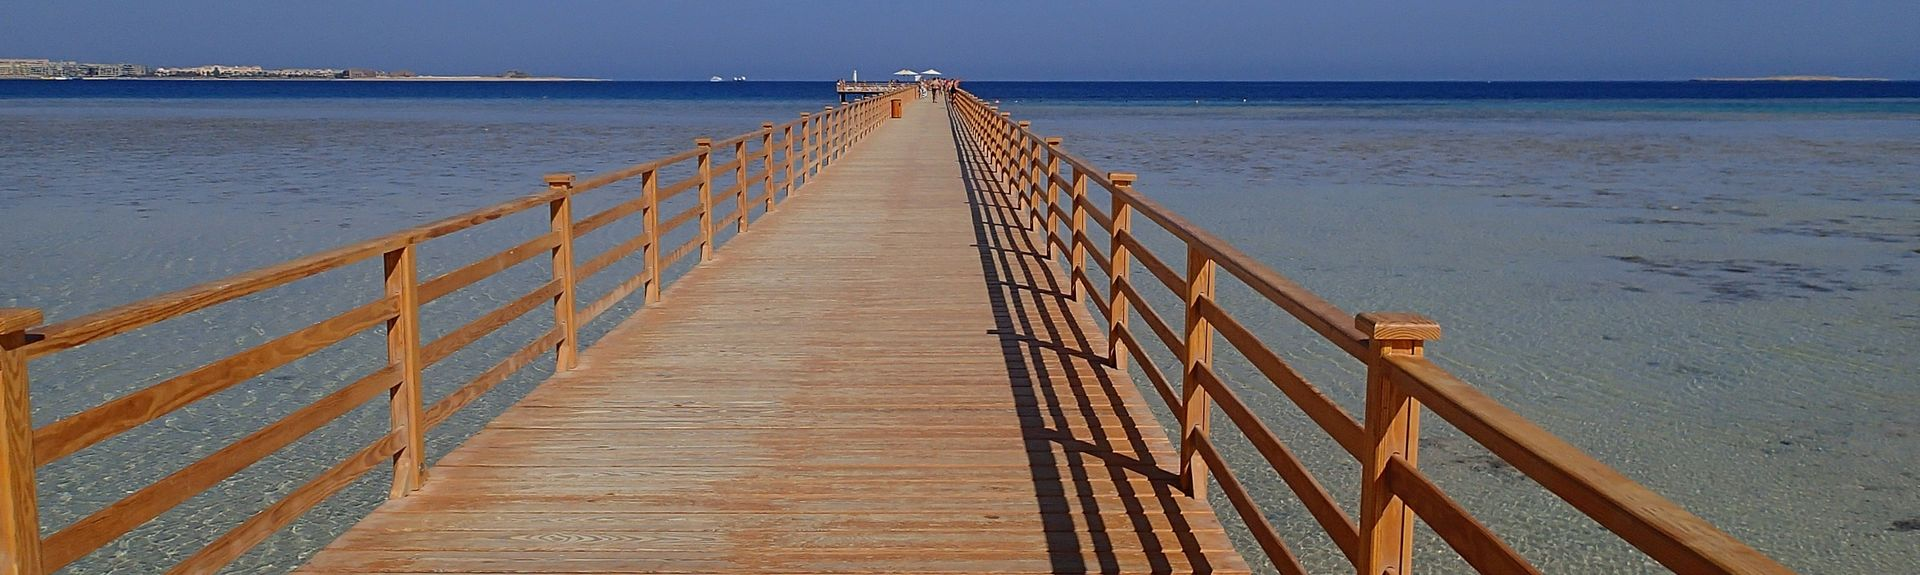 Sahl Hasheeh, Red Sea Governorate, Egypt